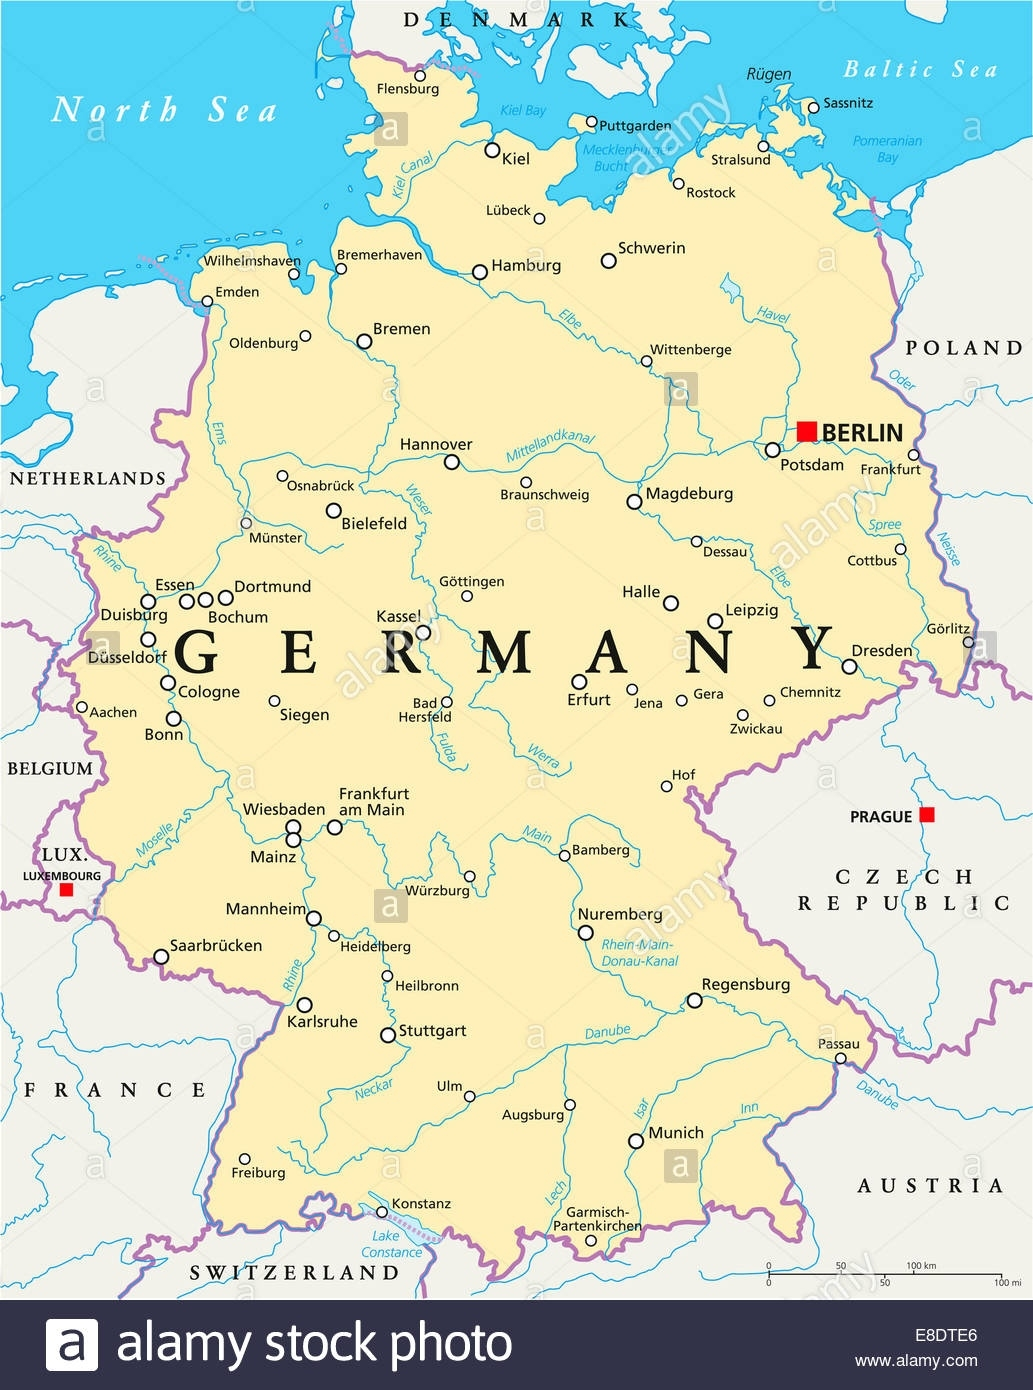 Germany Political Map With Capital Berlin, National Borders, Most with regard to Political Map Of Germany In English